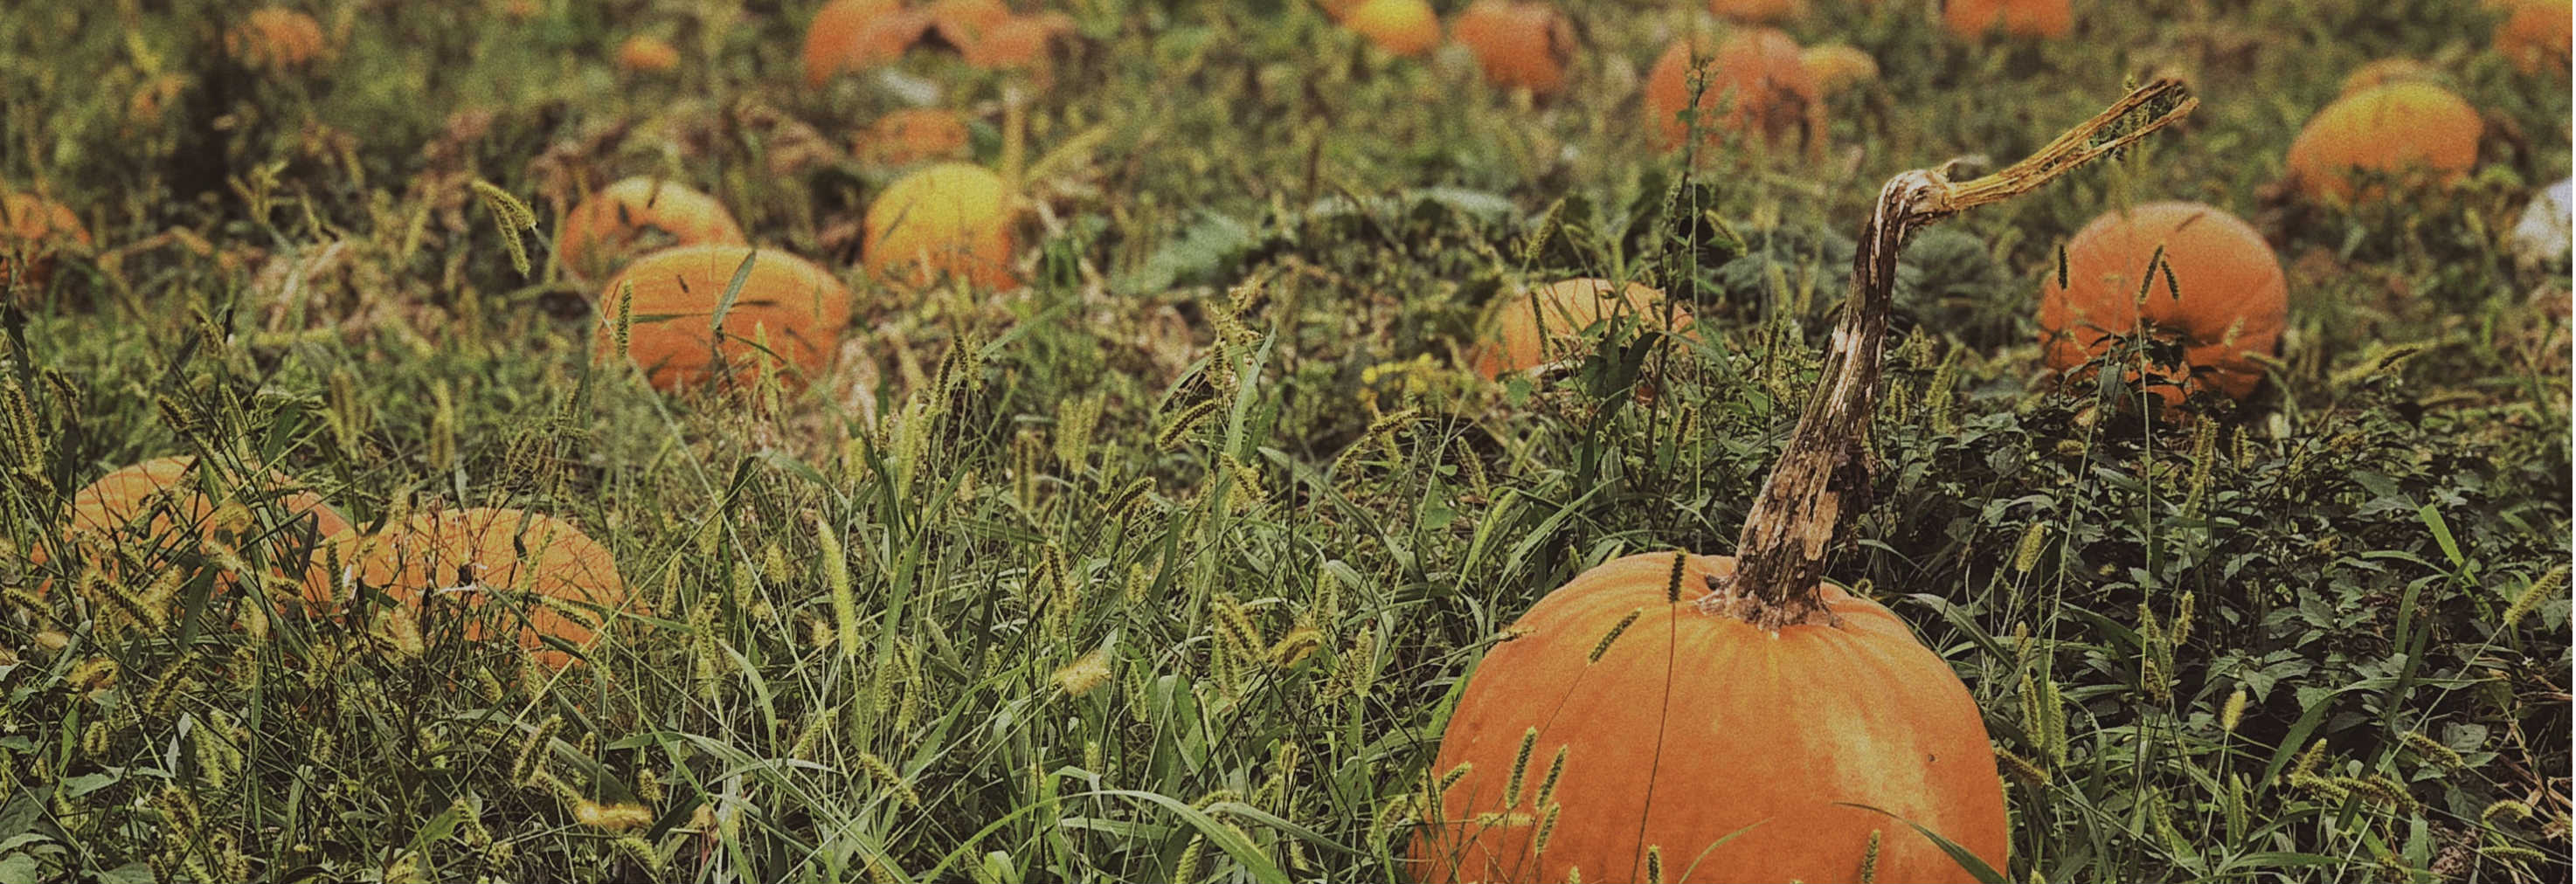 pumpkins in a field